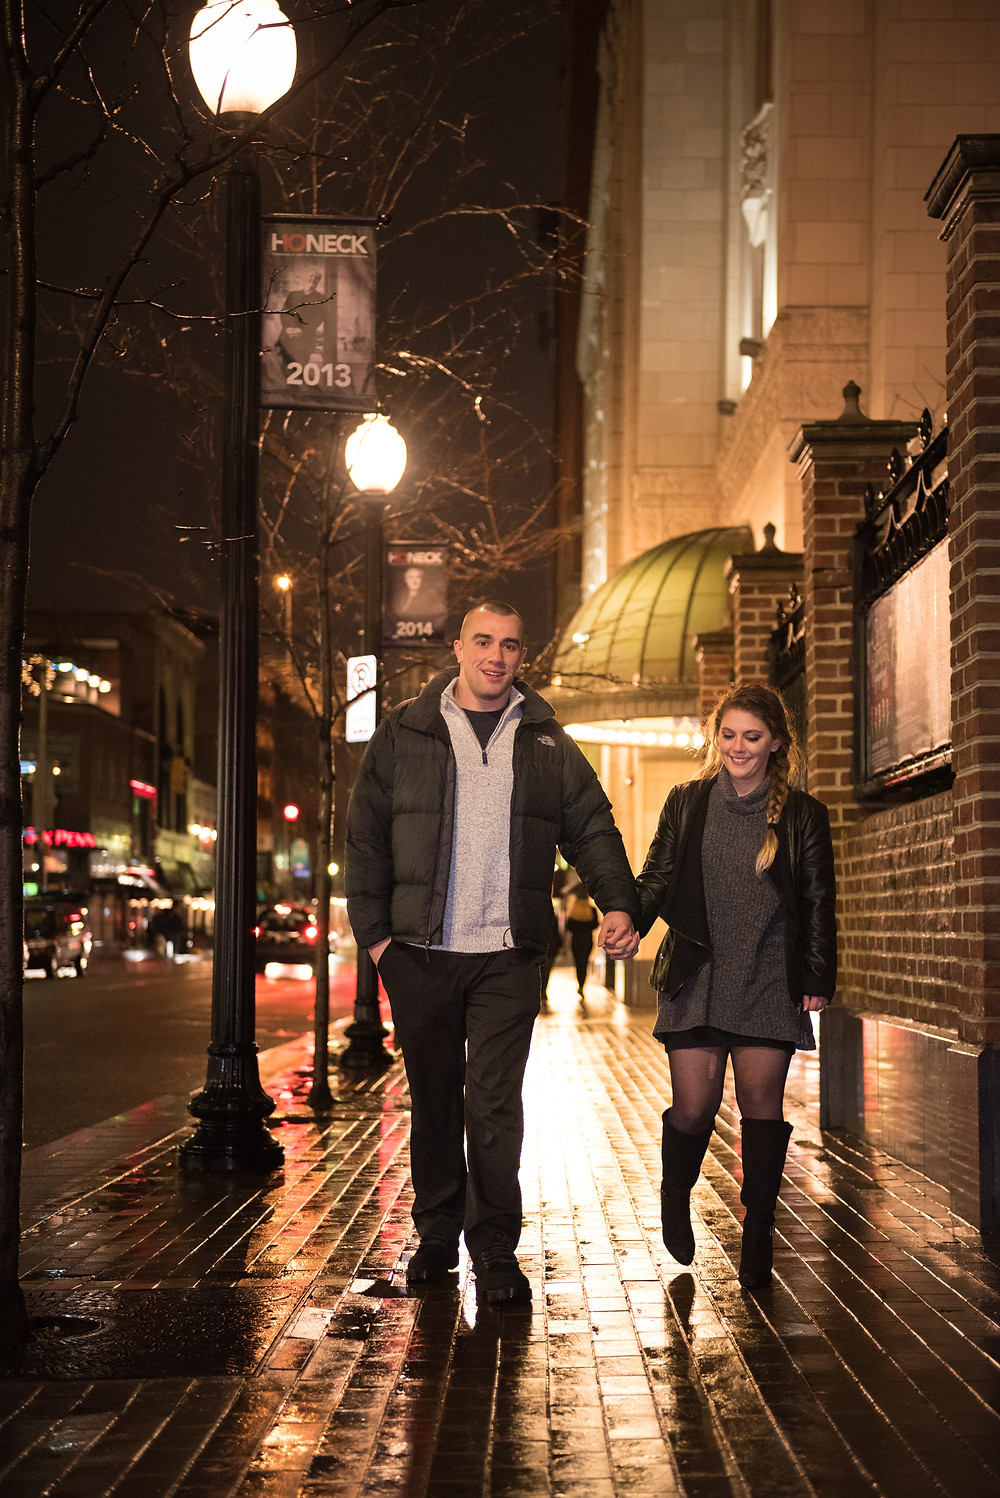 A winter engagement session in Pittsburgh, Pennsylvania. Couple walking and holding hands down the sidewalks of Pittsburgh